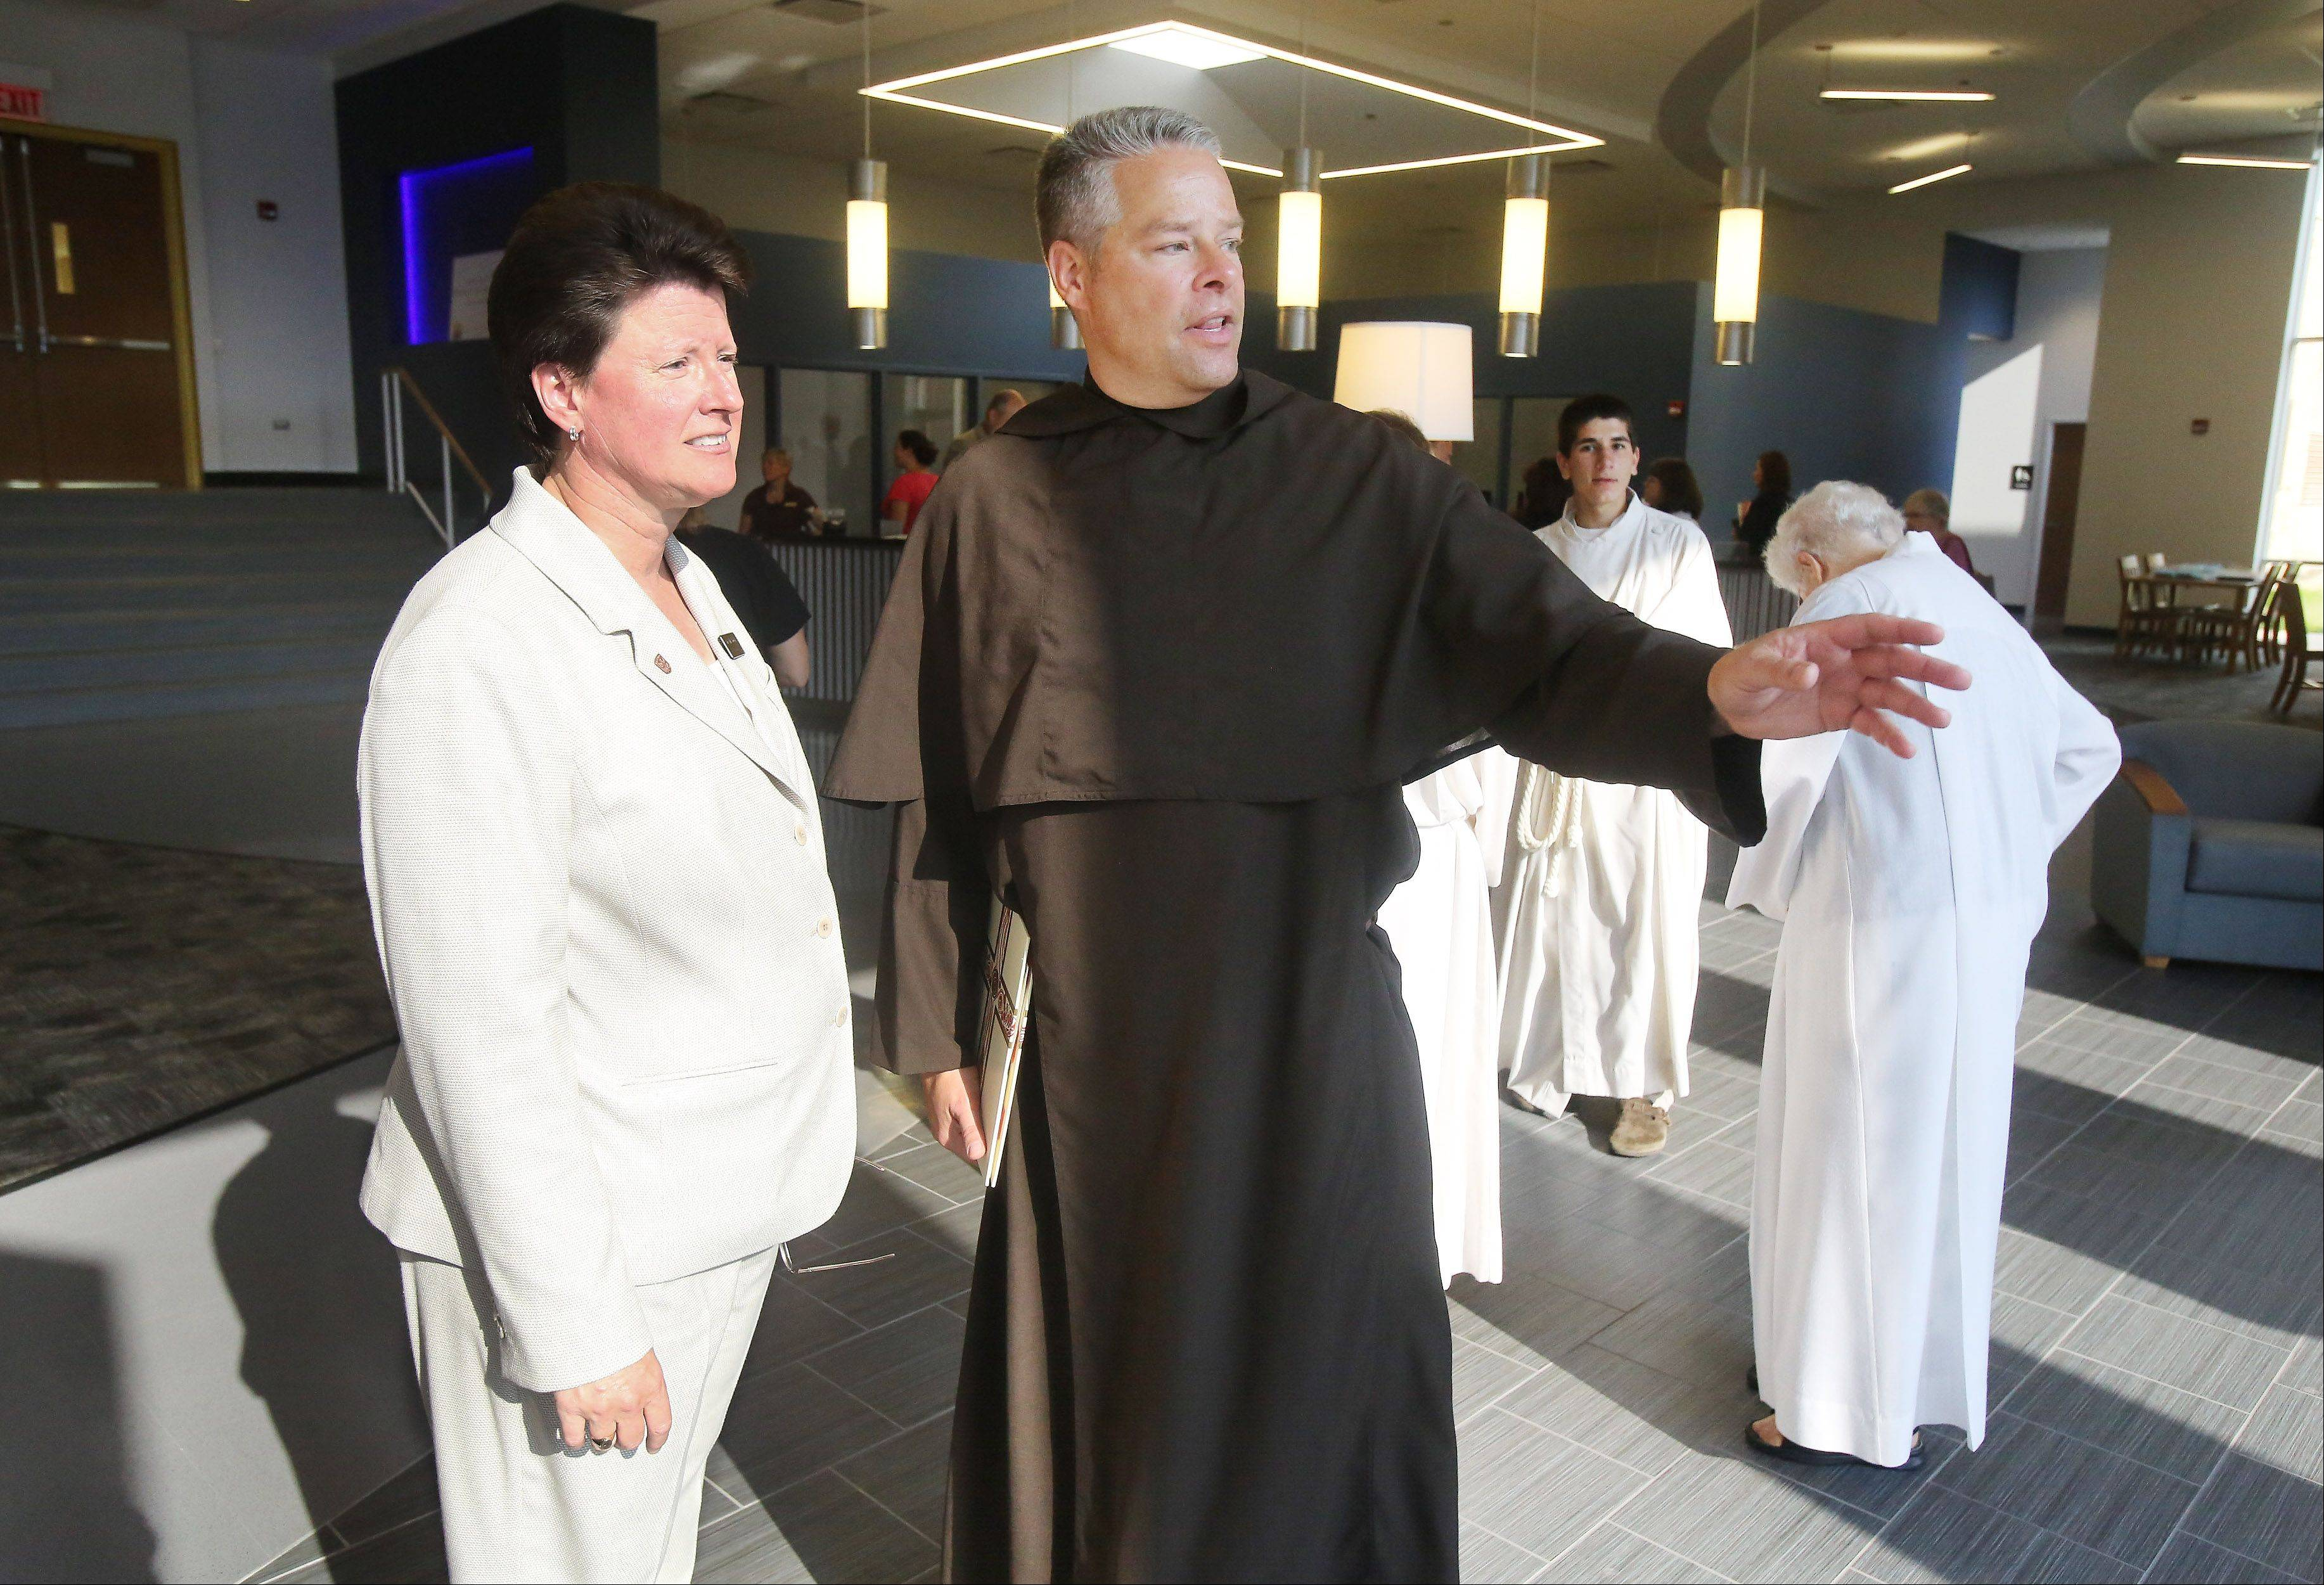 Carmel High School President Judith Mucheck, left, talks with the Rev. Carl Markelz during the dedication ceremony for the Fine and Performing Arts Center and Information Commons at the school in Mundelein. Mucheck resigned as president effective Jan. 3, the school announced Thursday.